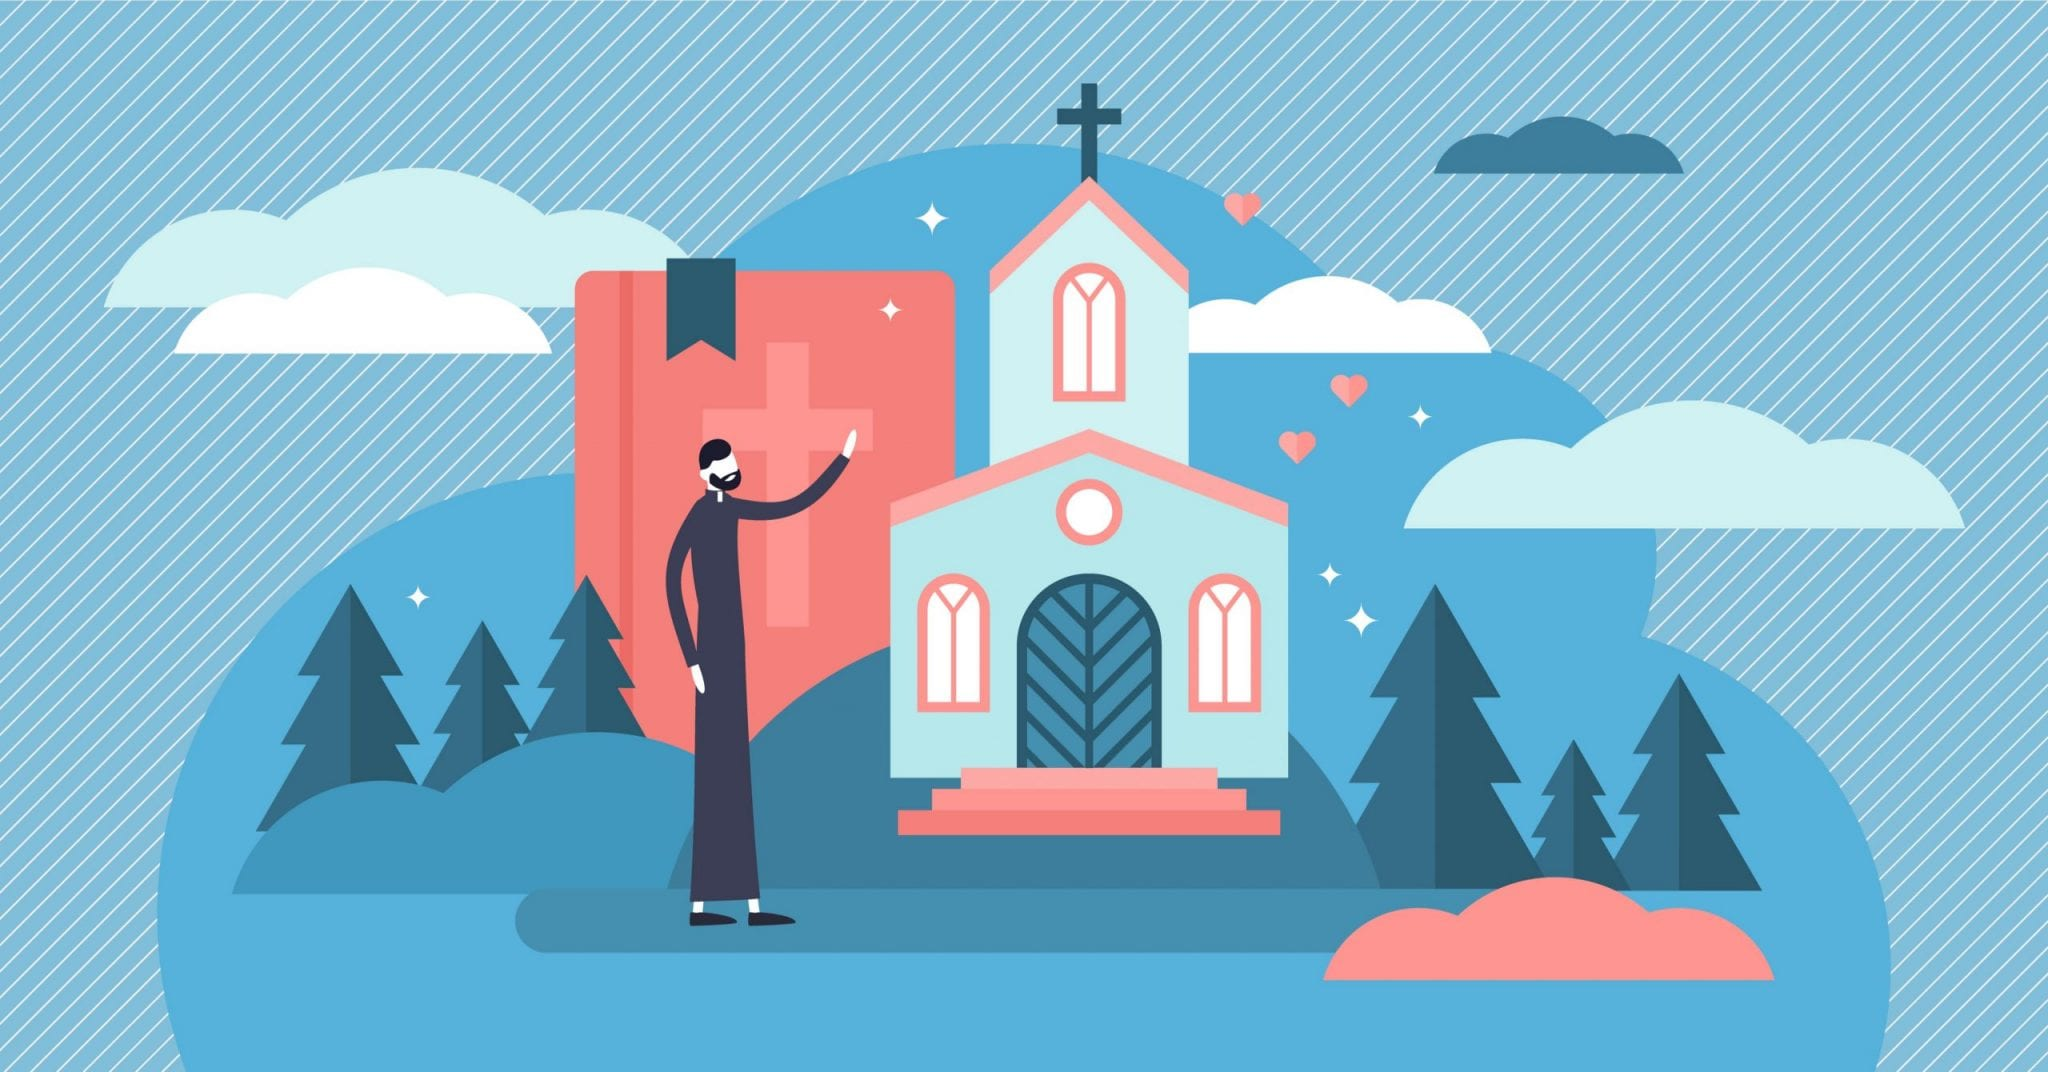 Christianity Vector Illustration. Flat Tiny Holy Church Priest Persons Concept. Sacred Theology Culture, Esoteric Ethnic Tradition to Pray Jesus and God. Symbolic Catholic Evangelist Belief and Faith.